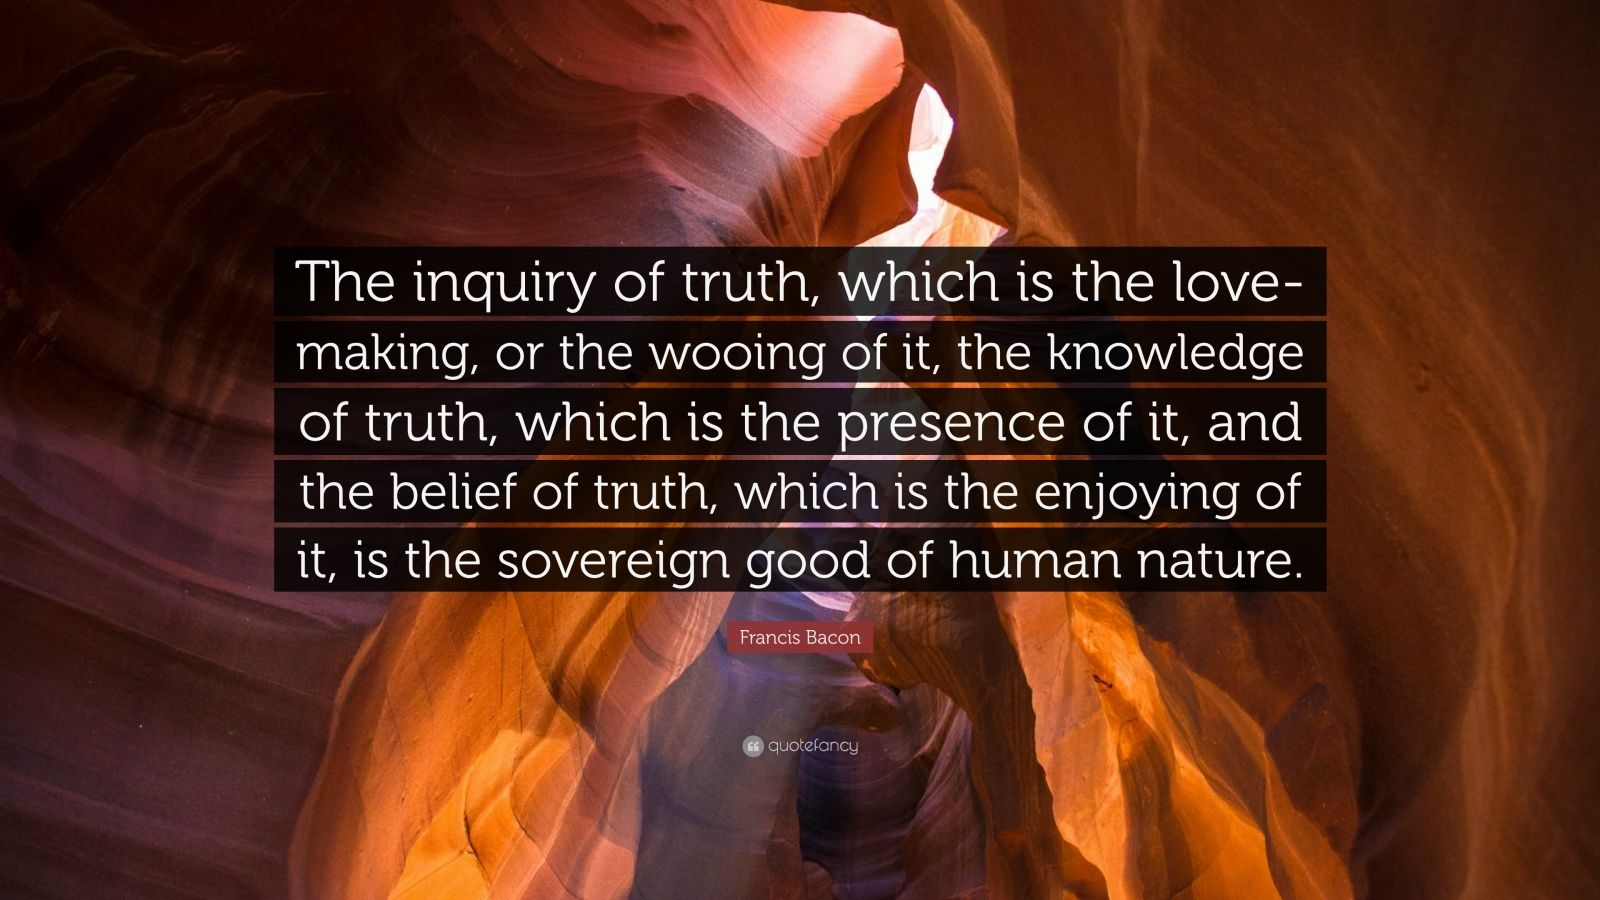 """Francis Bacon Quote: """"The inquiry of truth, which is the love-making, or the wooing of it, the knowledge of truth, which is the presence of it, and the belief of truth, which is the enjoying of it, is the sovereign good of human nature."""""""